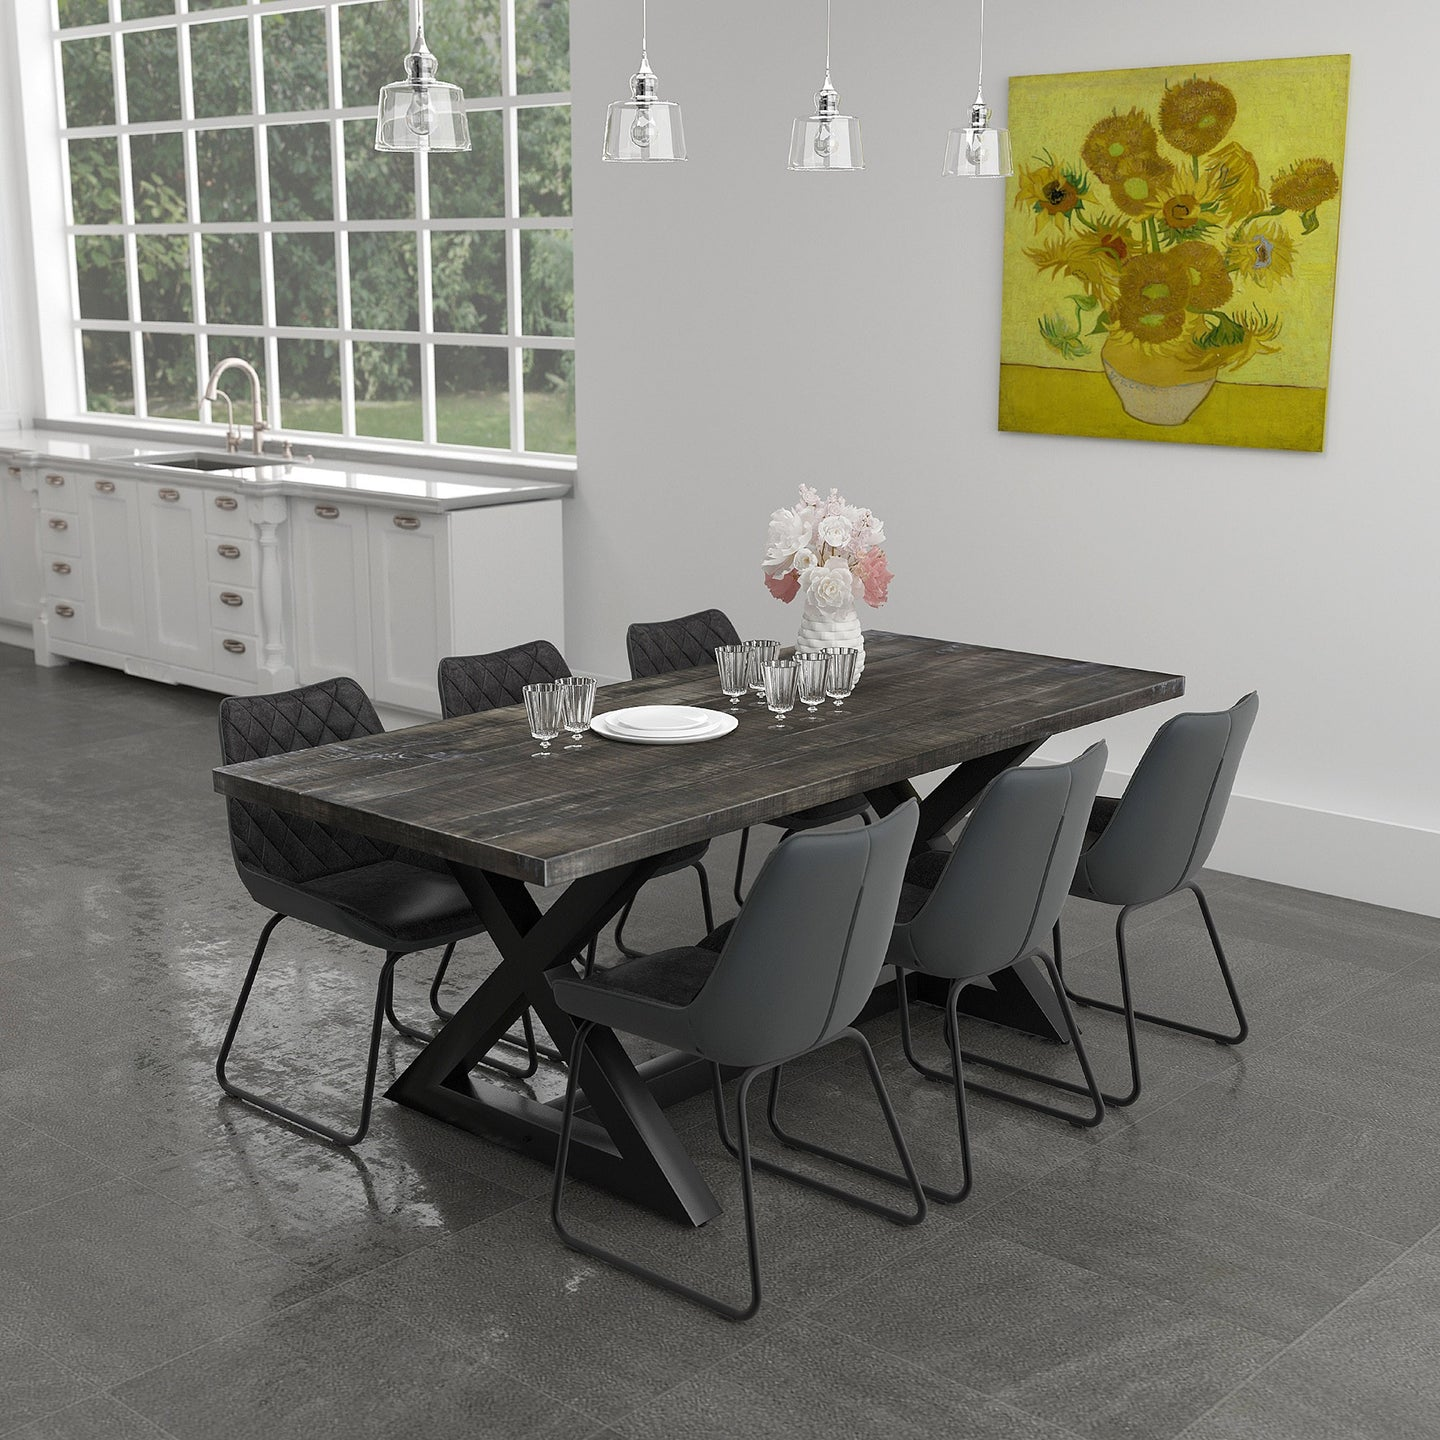 Zax/Calvin 7pc Dining Set Black/Vintage Charcoal